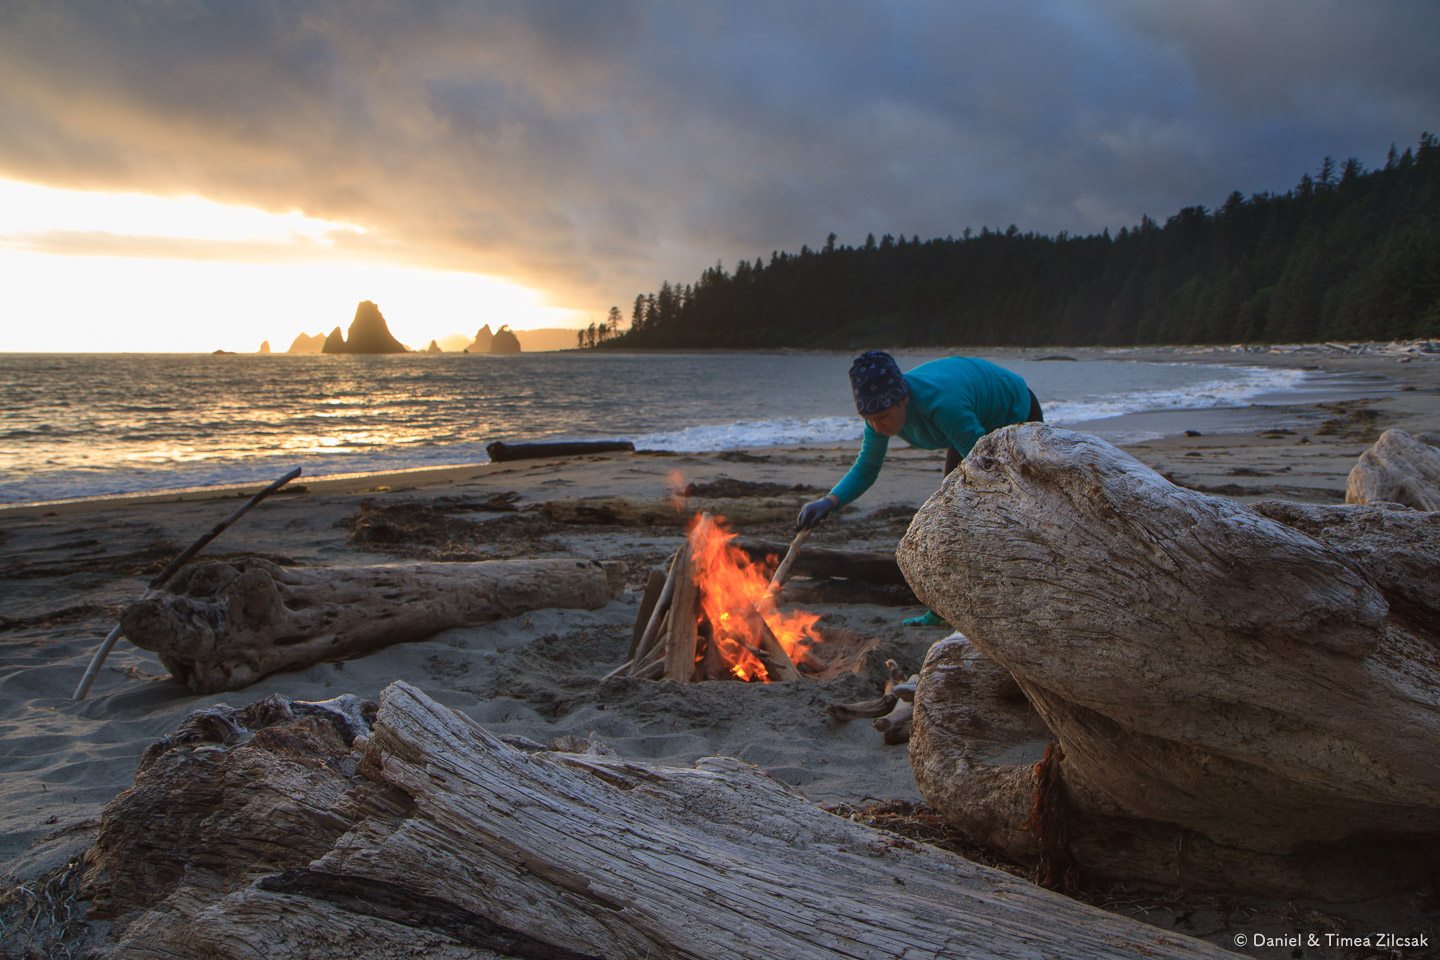 Building a fire and watching the sunset on the beach at Toleak Point, South Coast Wilderness Trail, Olympic Peninsula